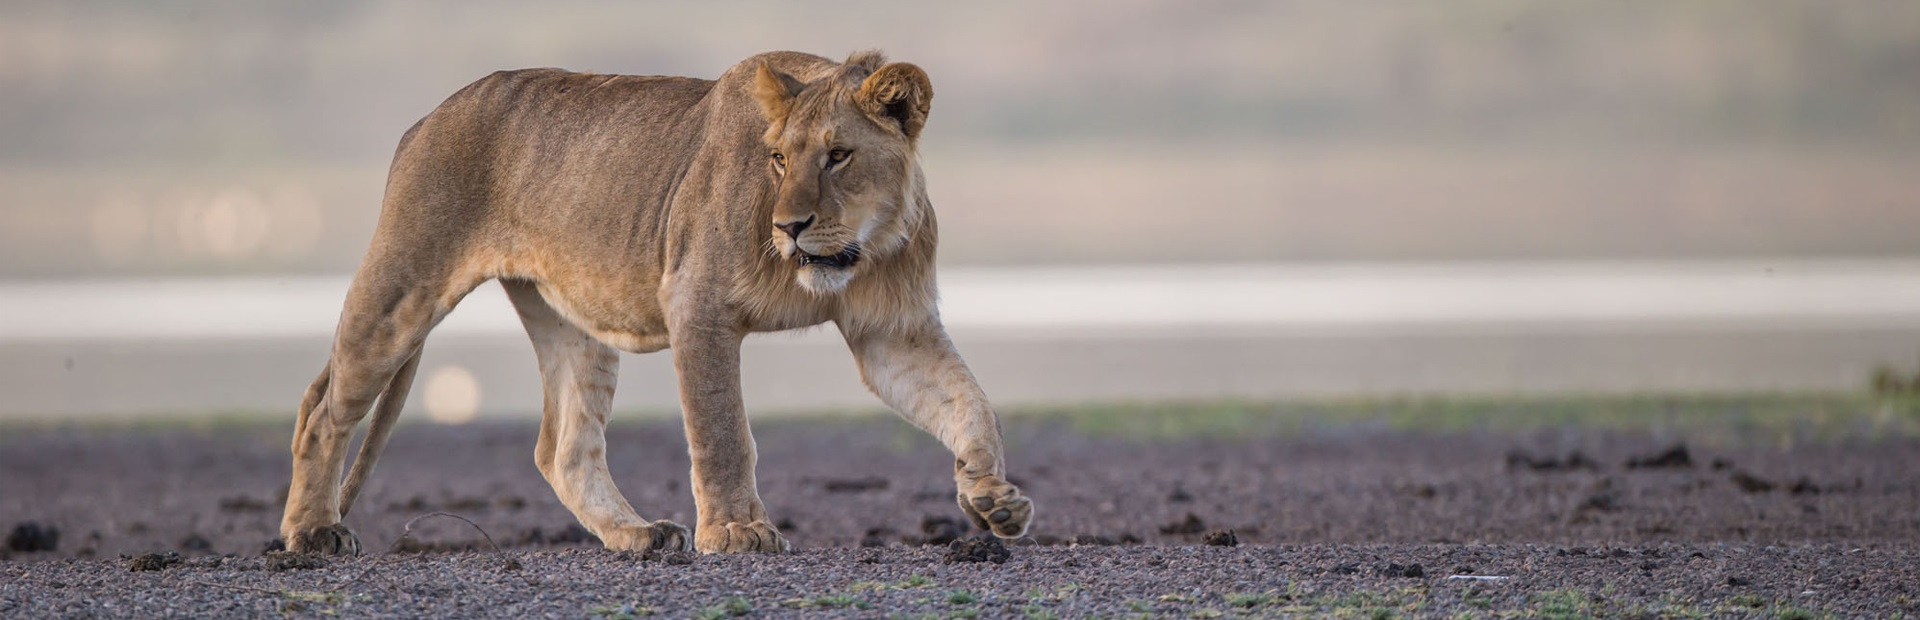 lion-in-Tanzania-on-a-andBeyond-safari.jpg